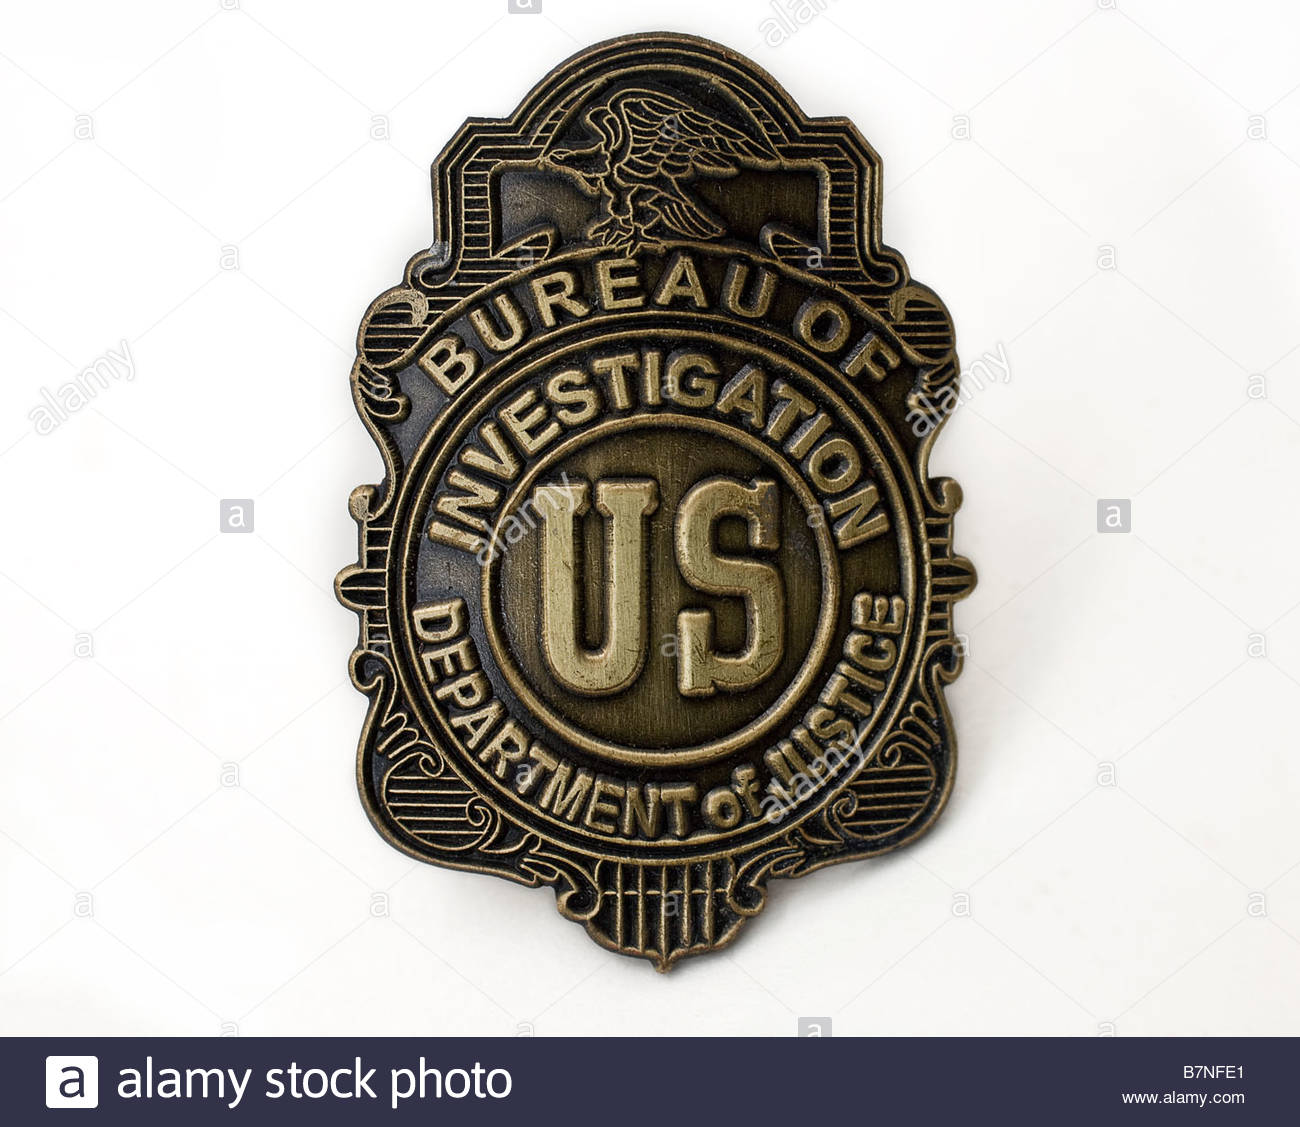 fbi badge photos fbi badge images alamy. Black Bedroom Furniture Sets. Home Design Ideas